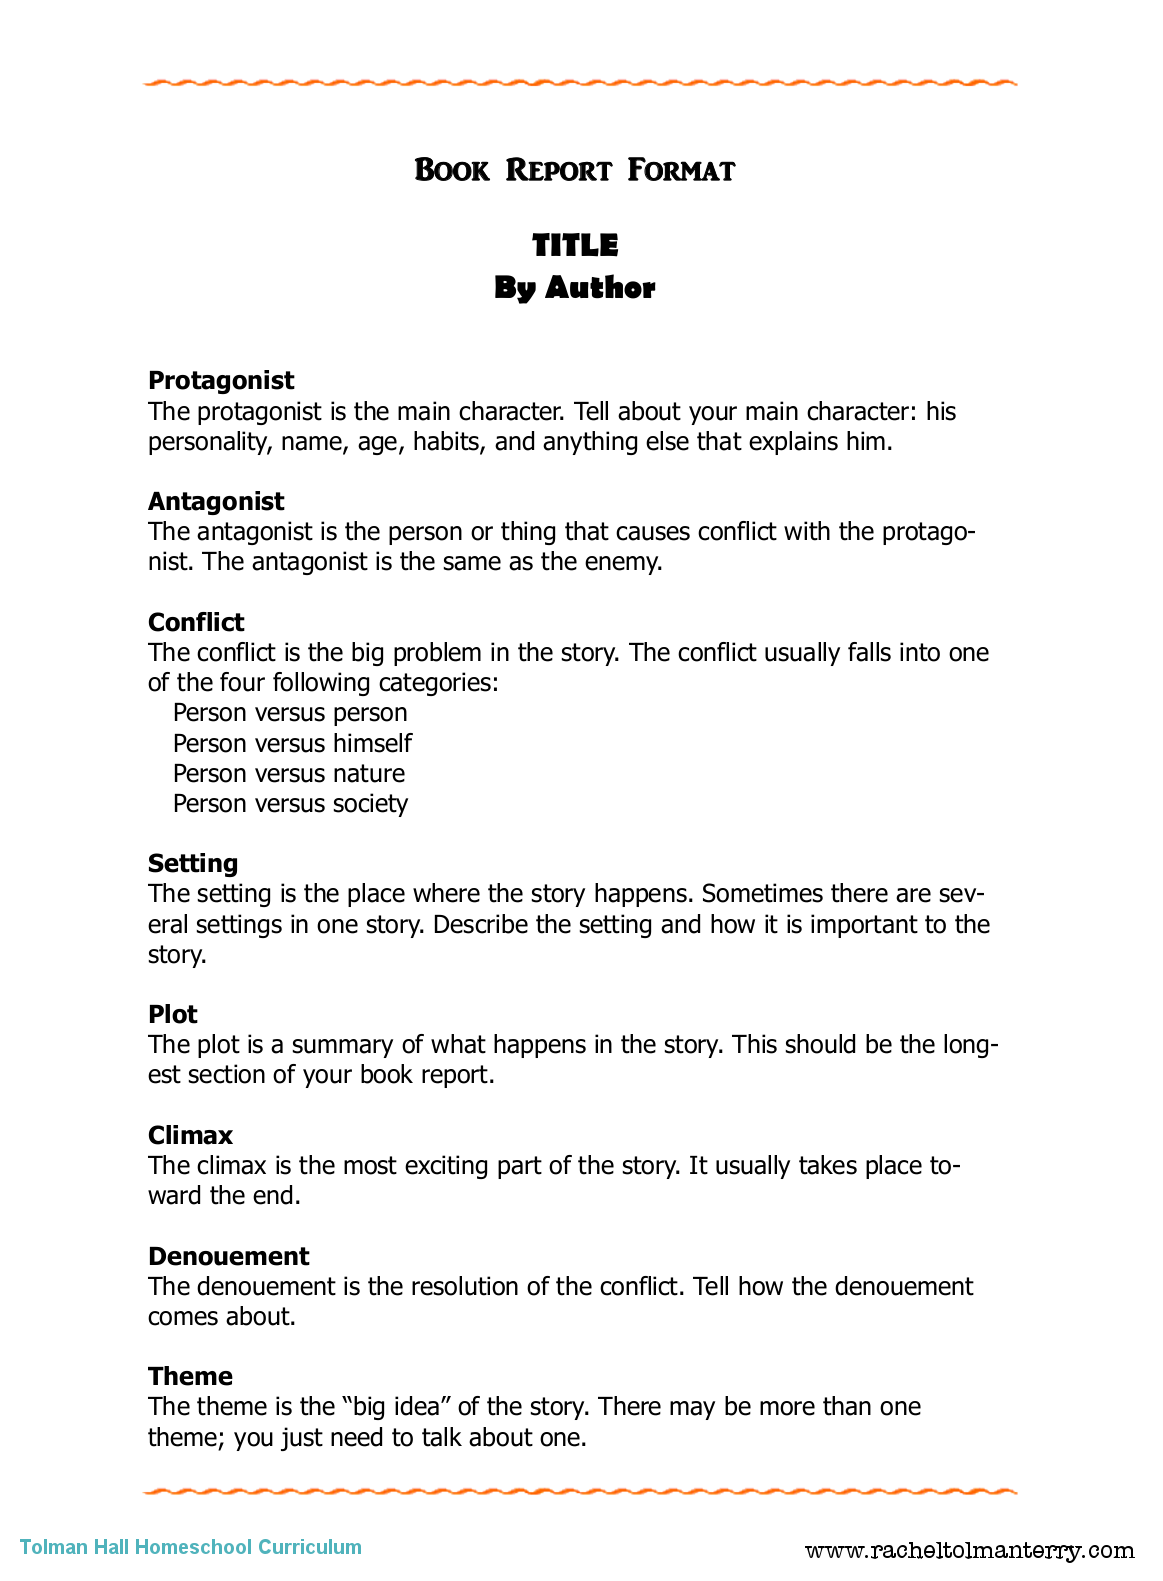 004 College Application Essay Examples Harvardale Supplement How To Write Good Bookreportformatpubl Nytimes Step By Admissions Best That Stands Out Outline Aboutourself Introduction Example Amazing Yale Prepscholar Guide Full